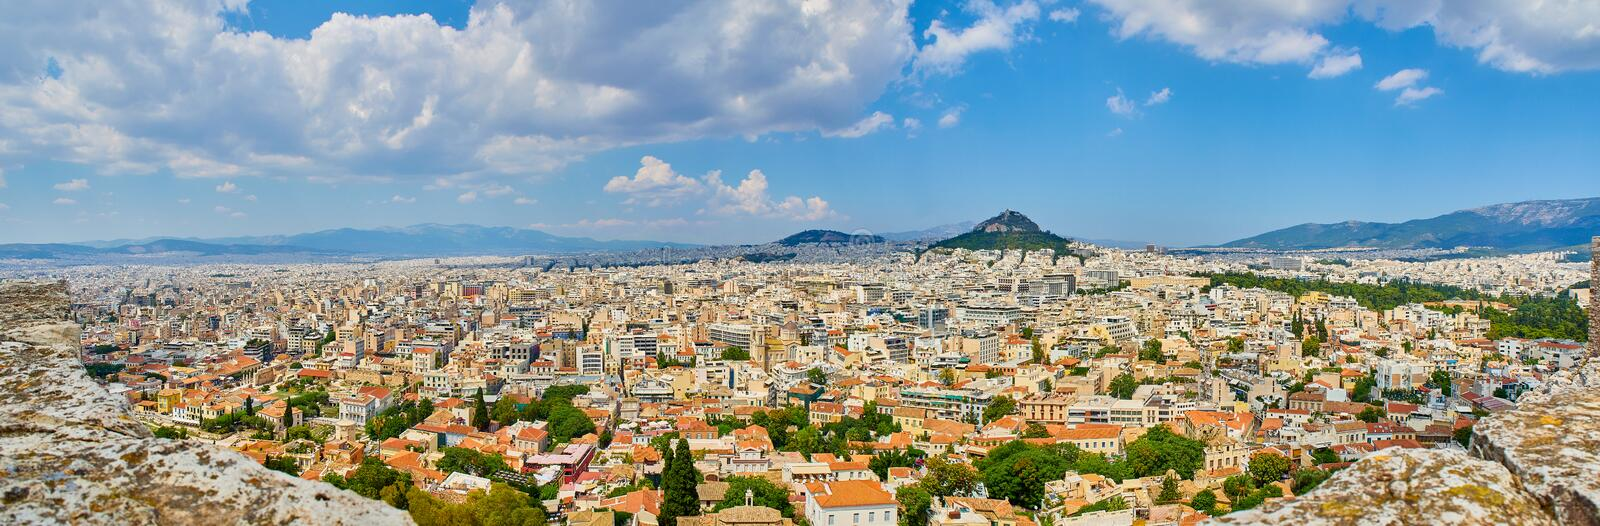 City of Athens. View from the Acropolis viewpoint. Attica, Greece. royalty free stock images